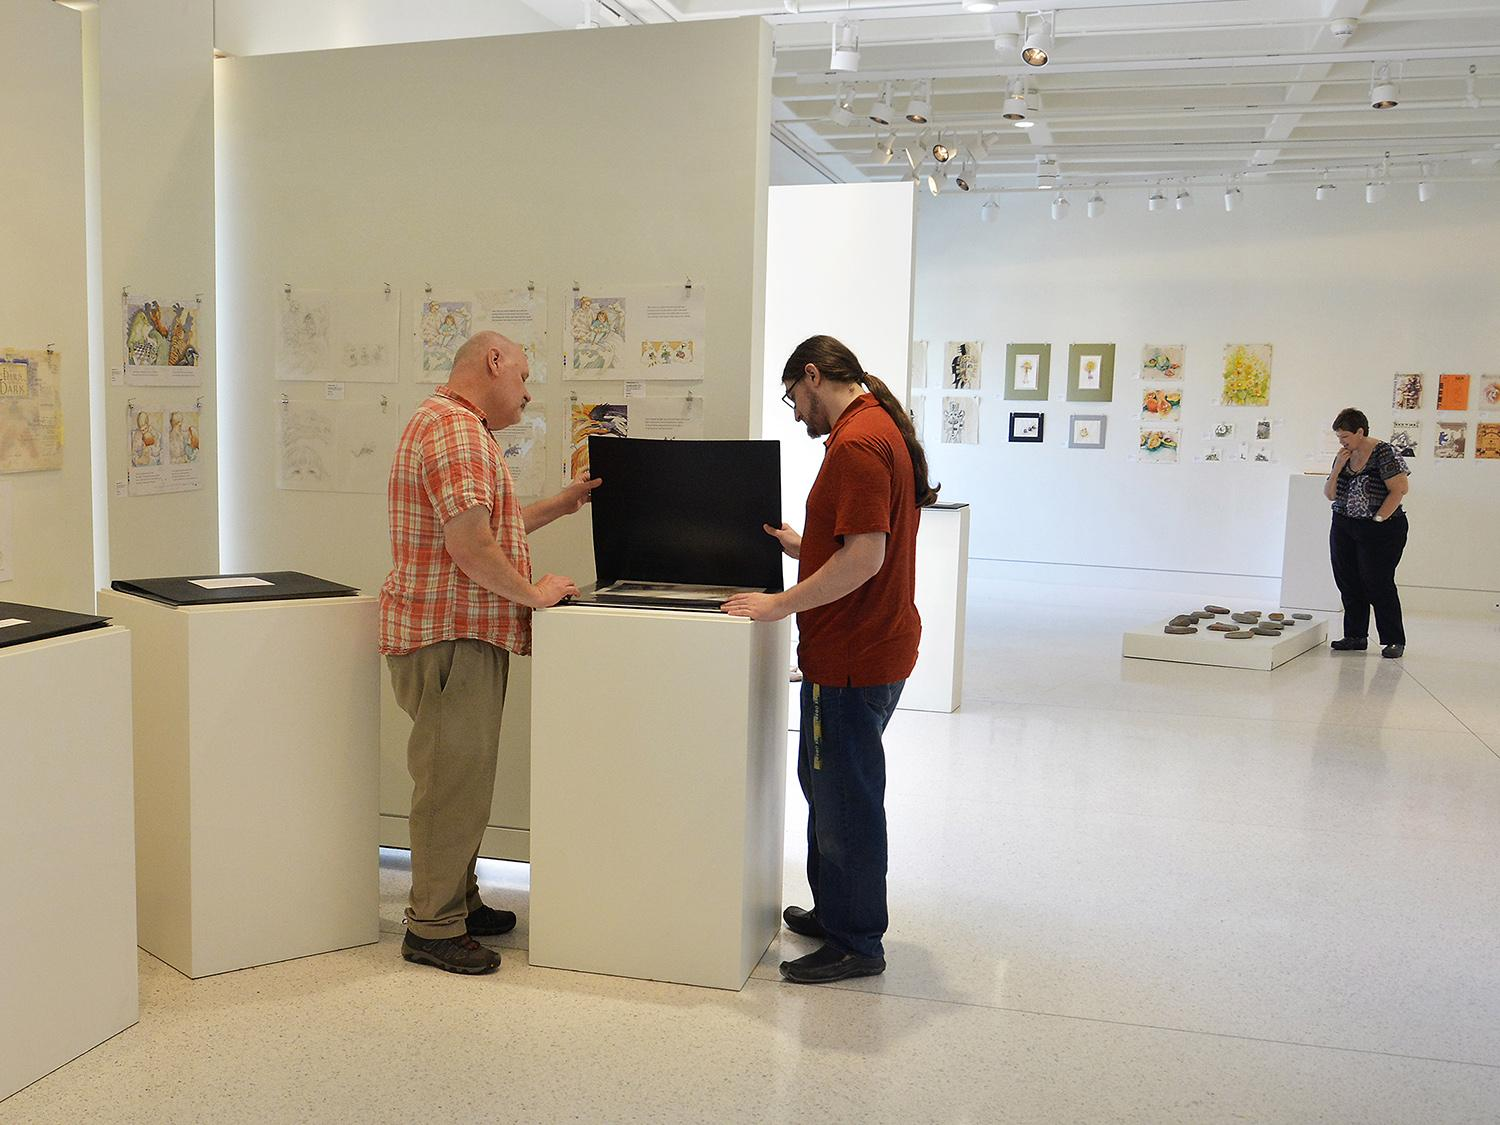 Gallery workers prepare Judith Ann Benedict art exhibition